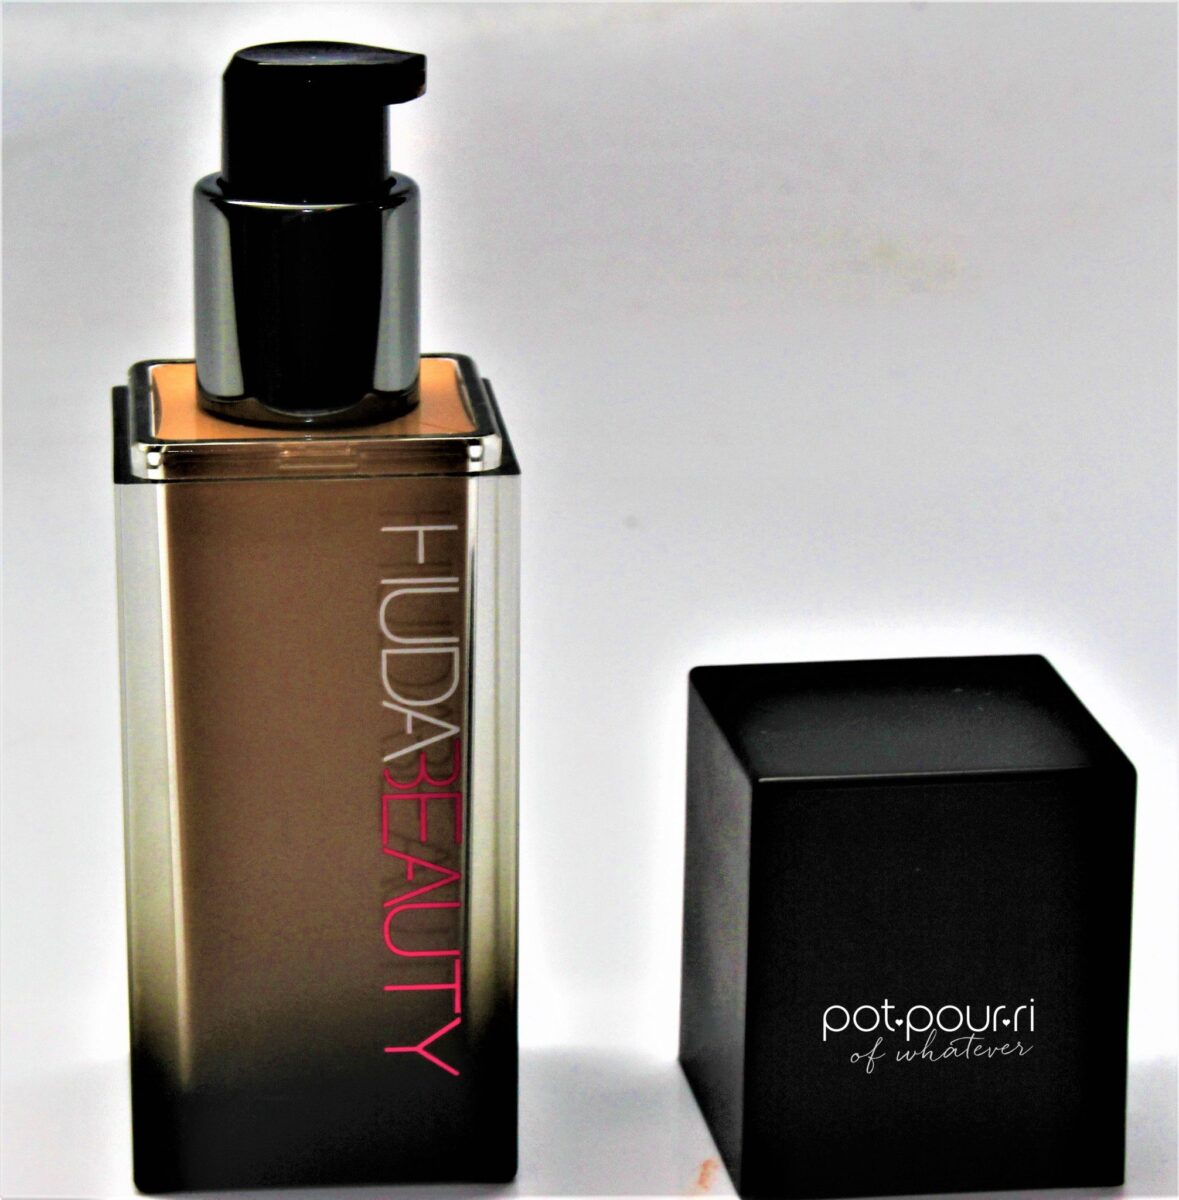 Huda-Beauty-pump-bottle-foundation